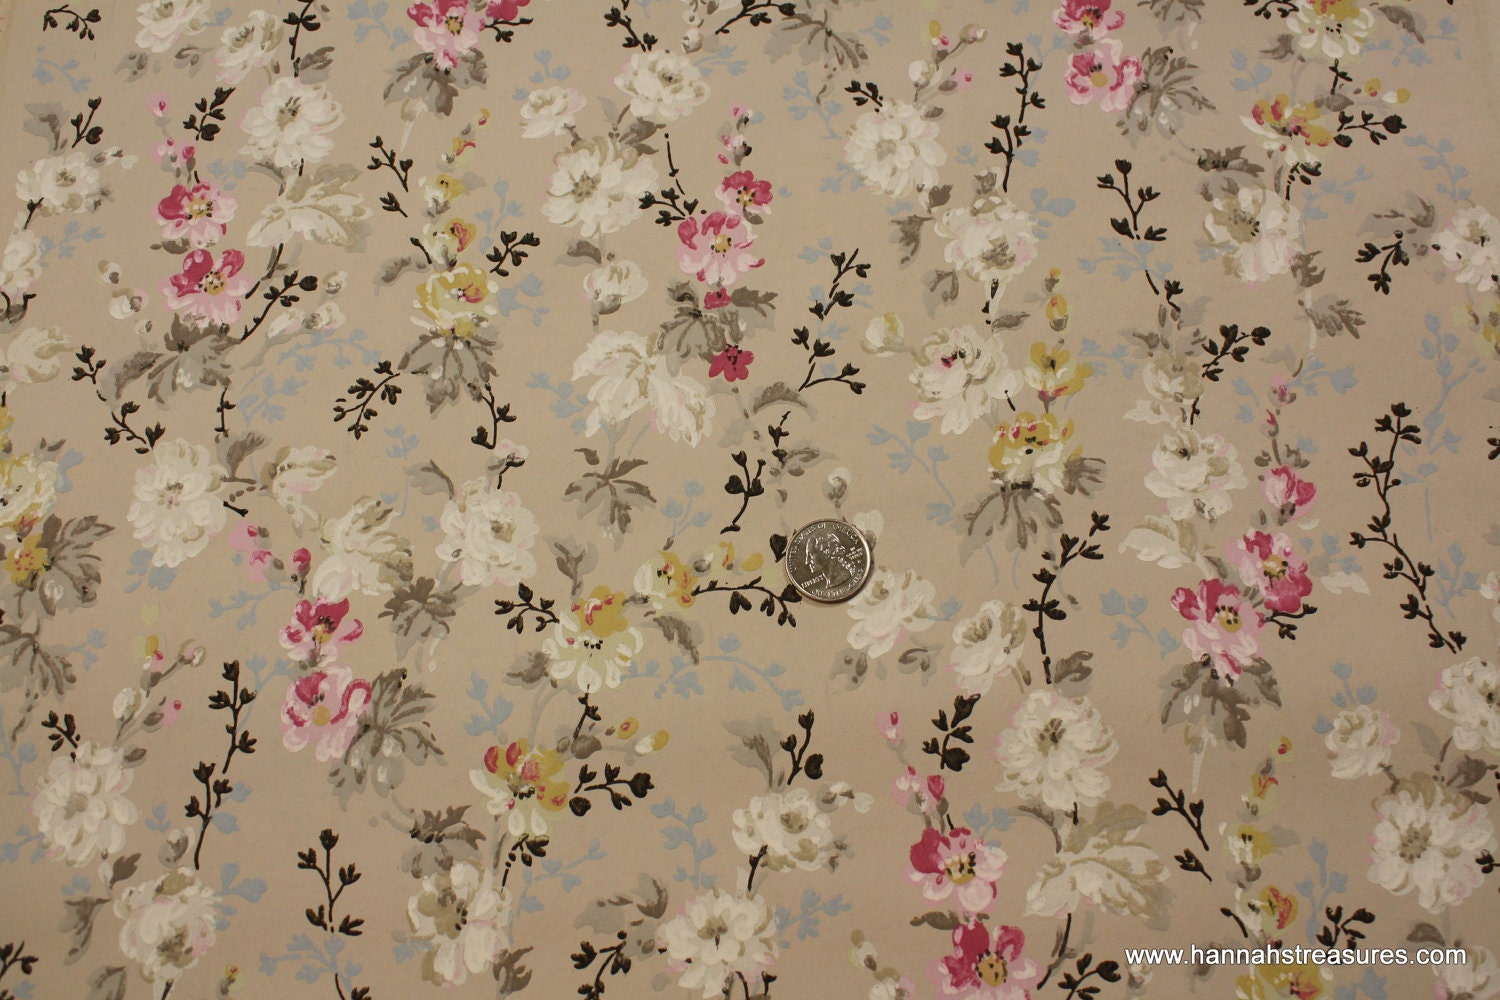 1920's Vintage Wallpaper Romantic White And Pink Small